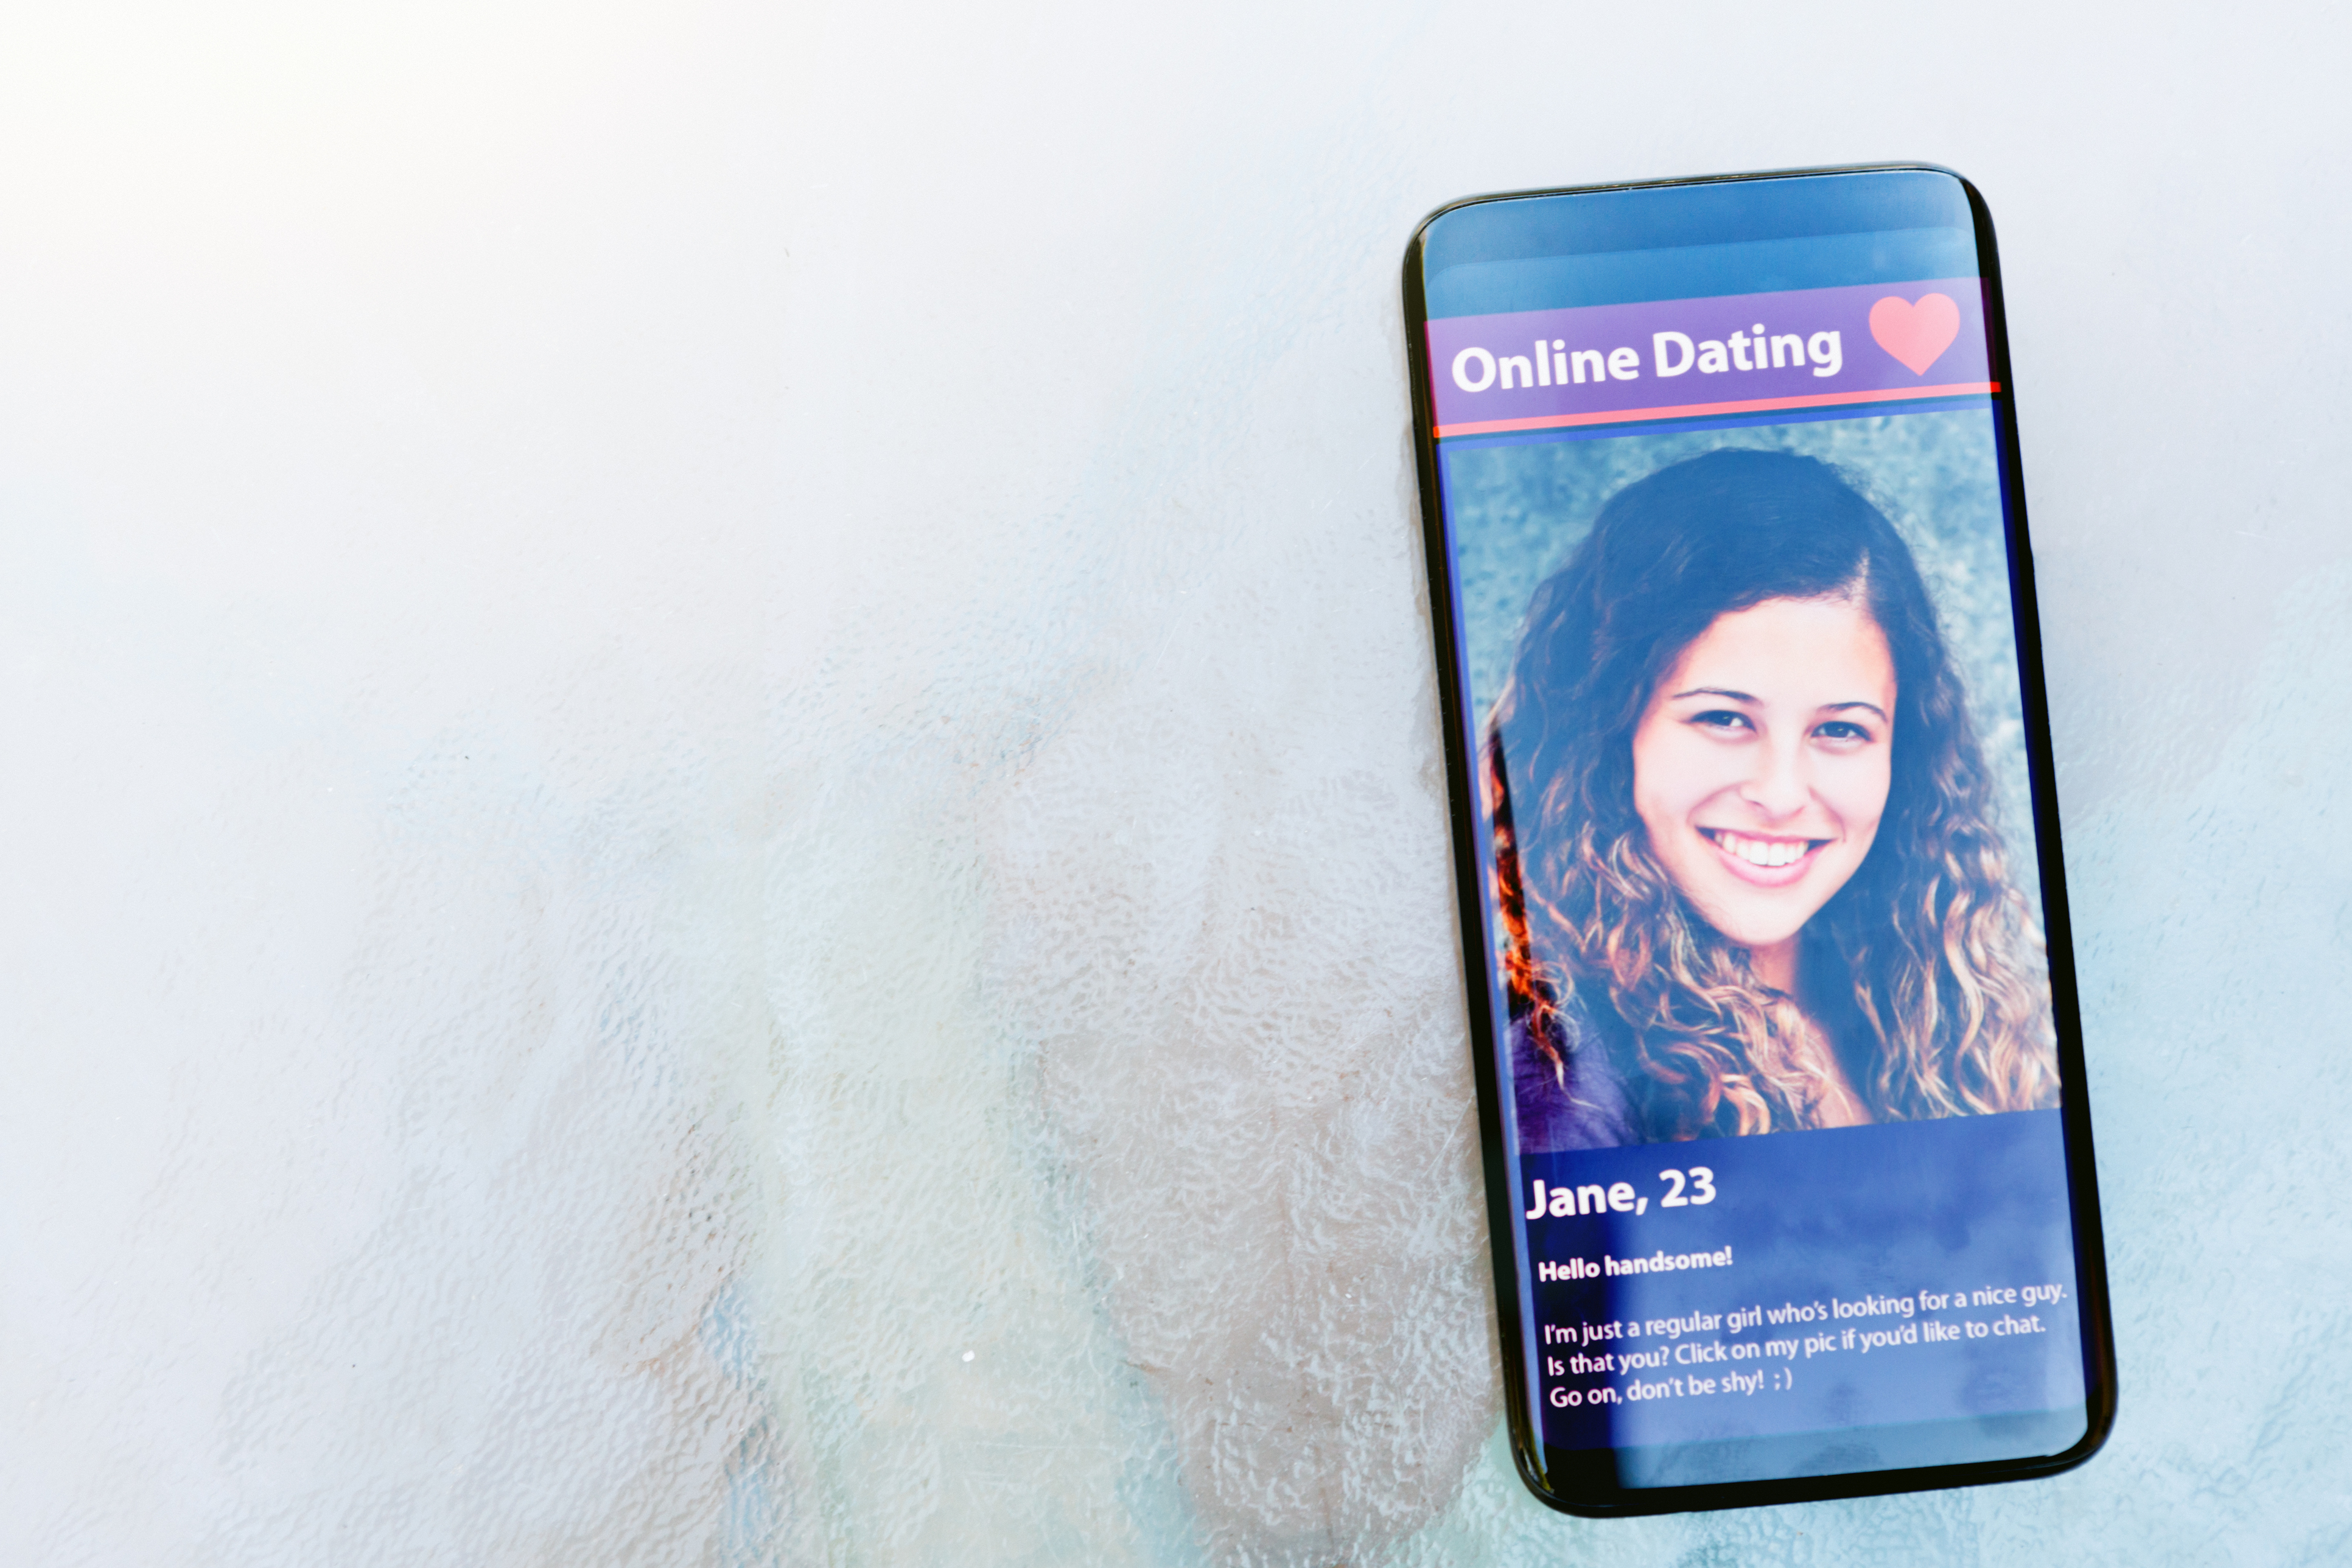 Trouble With Online Dating?